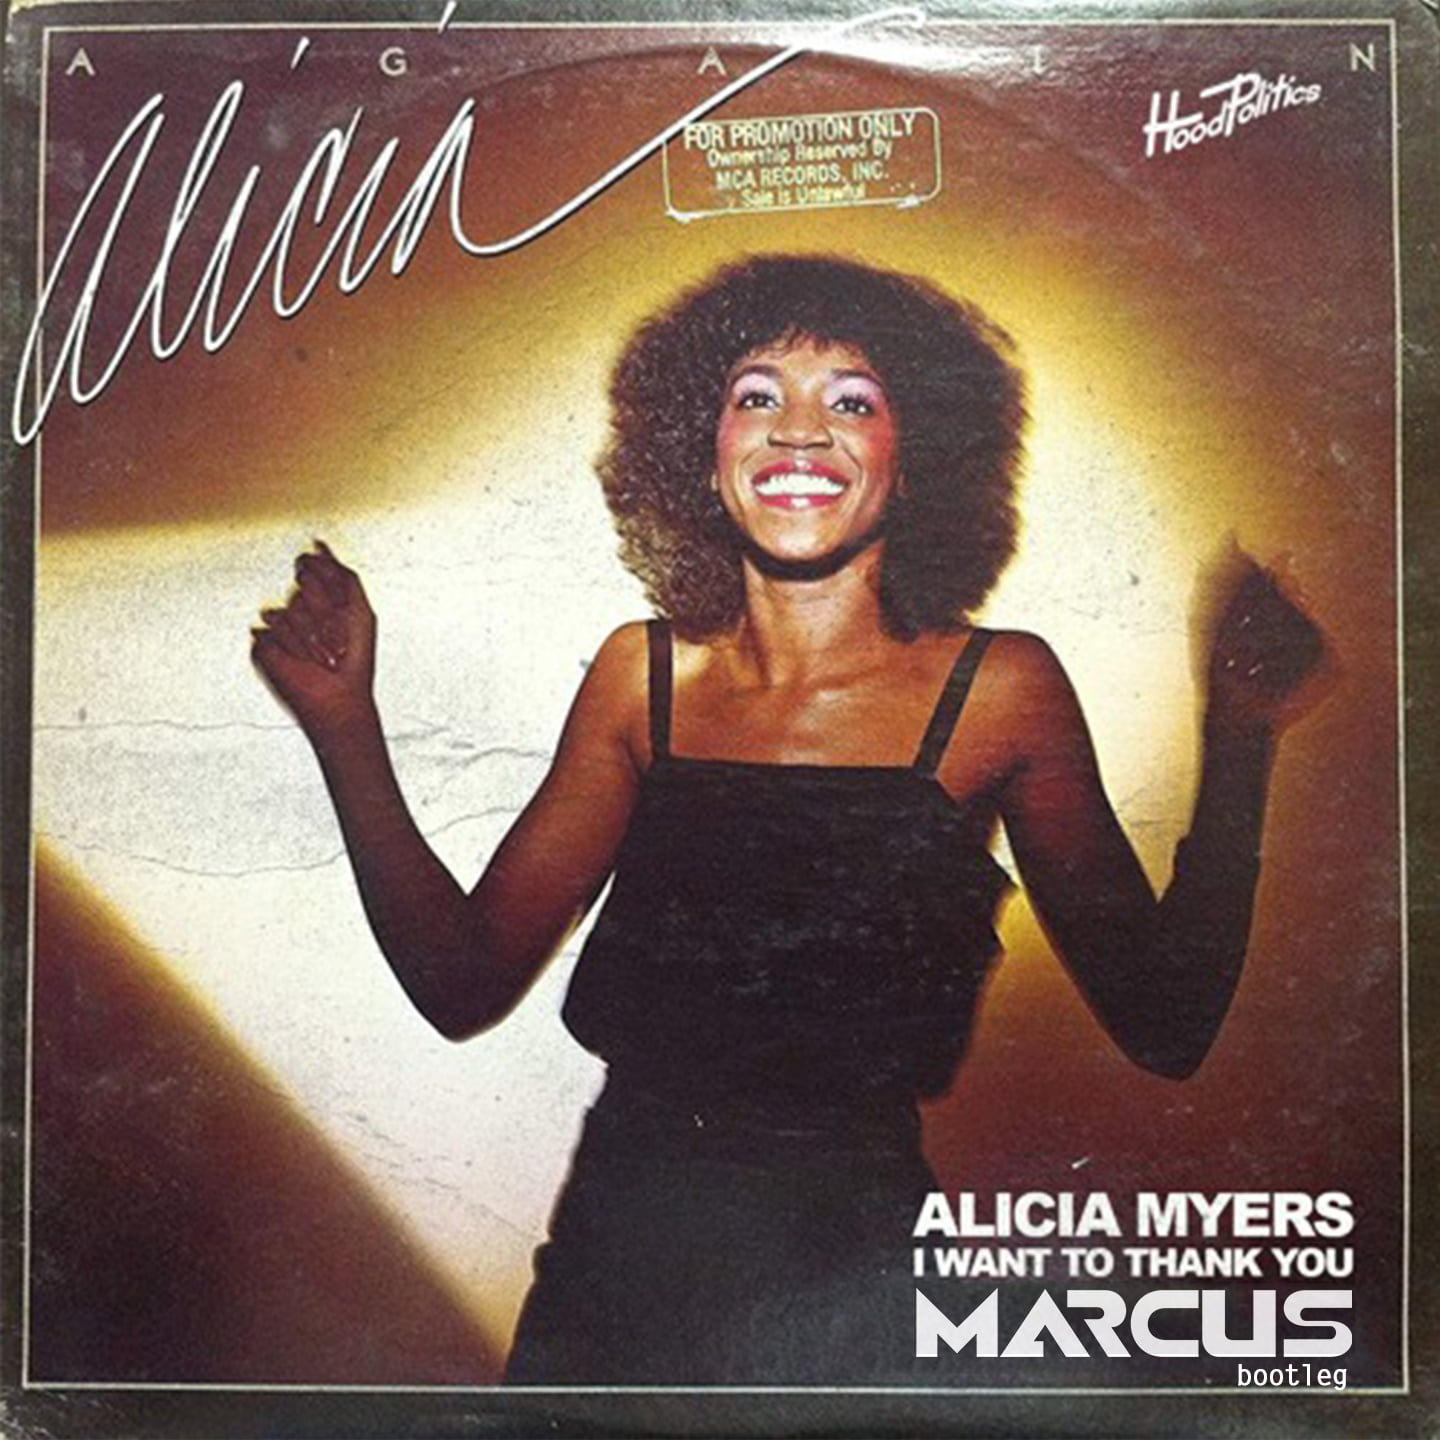 Alicia Myers – I Want To Thank You (Marcus bootleg)